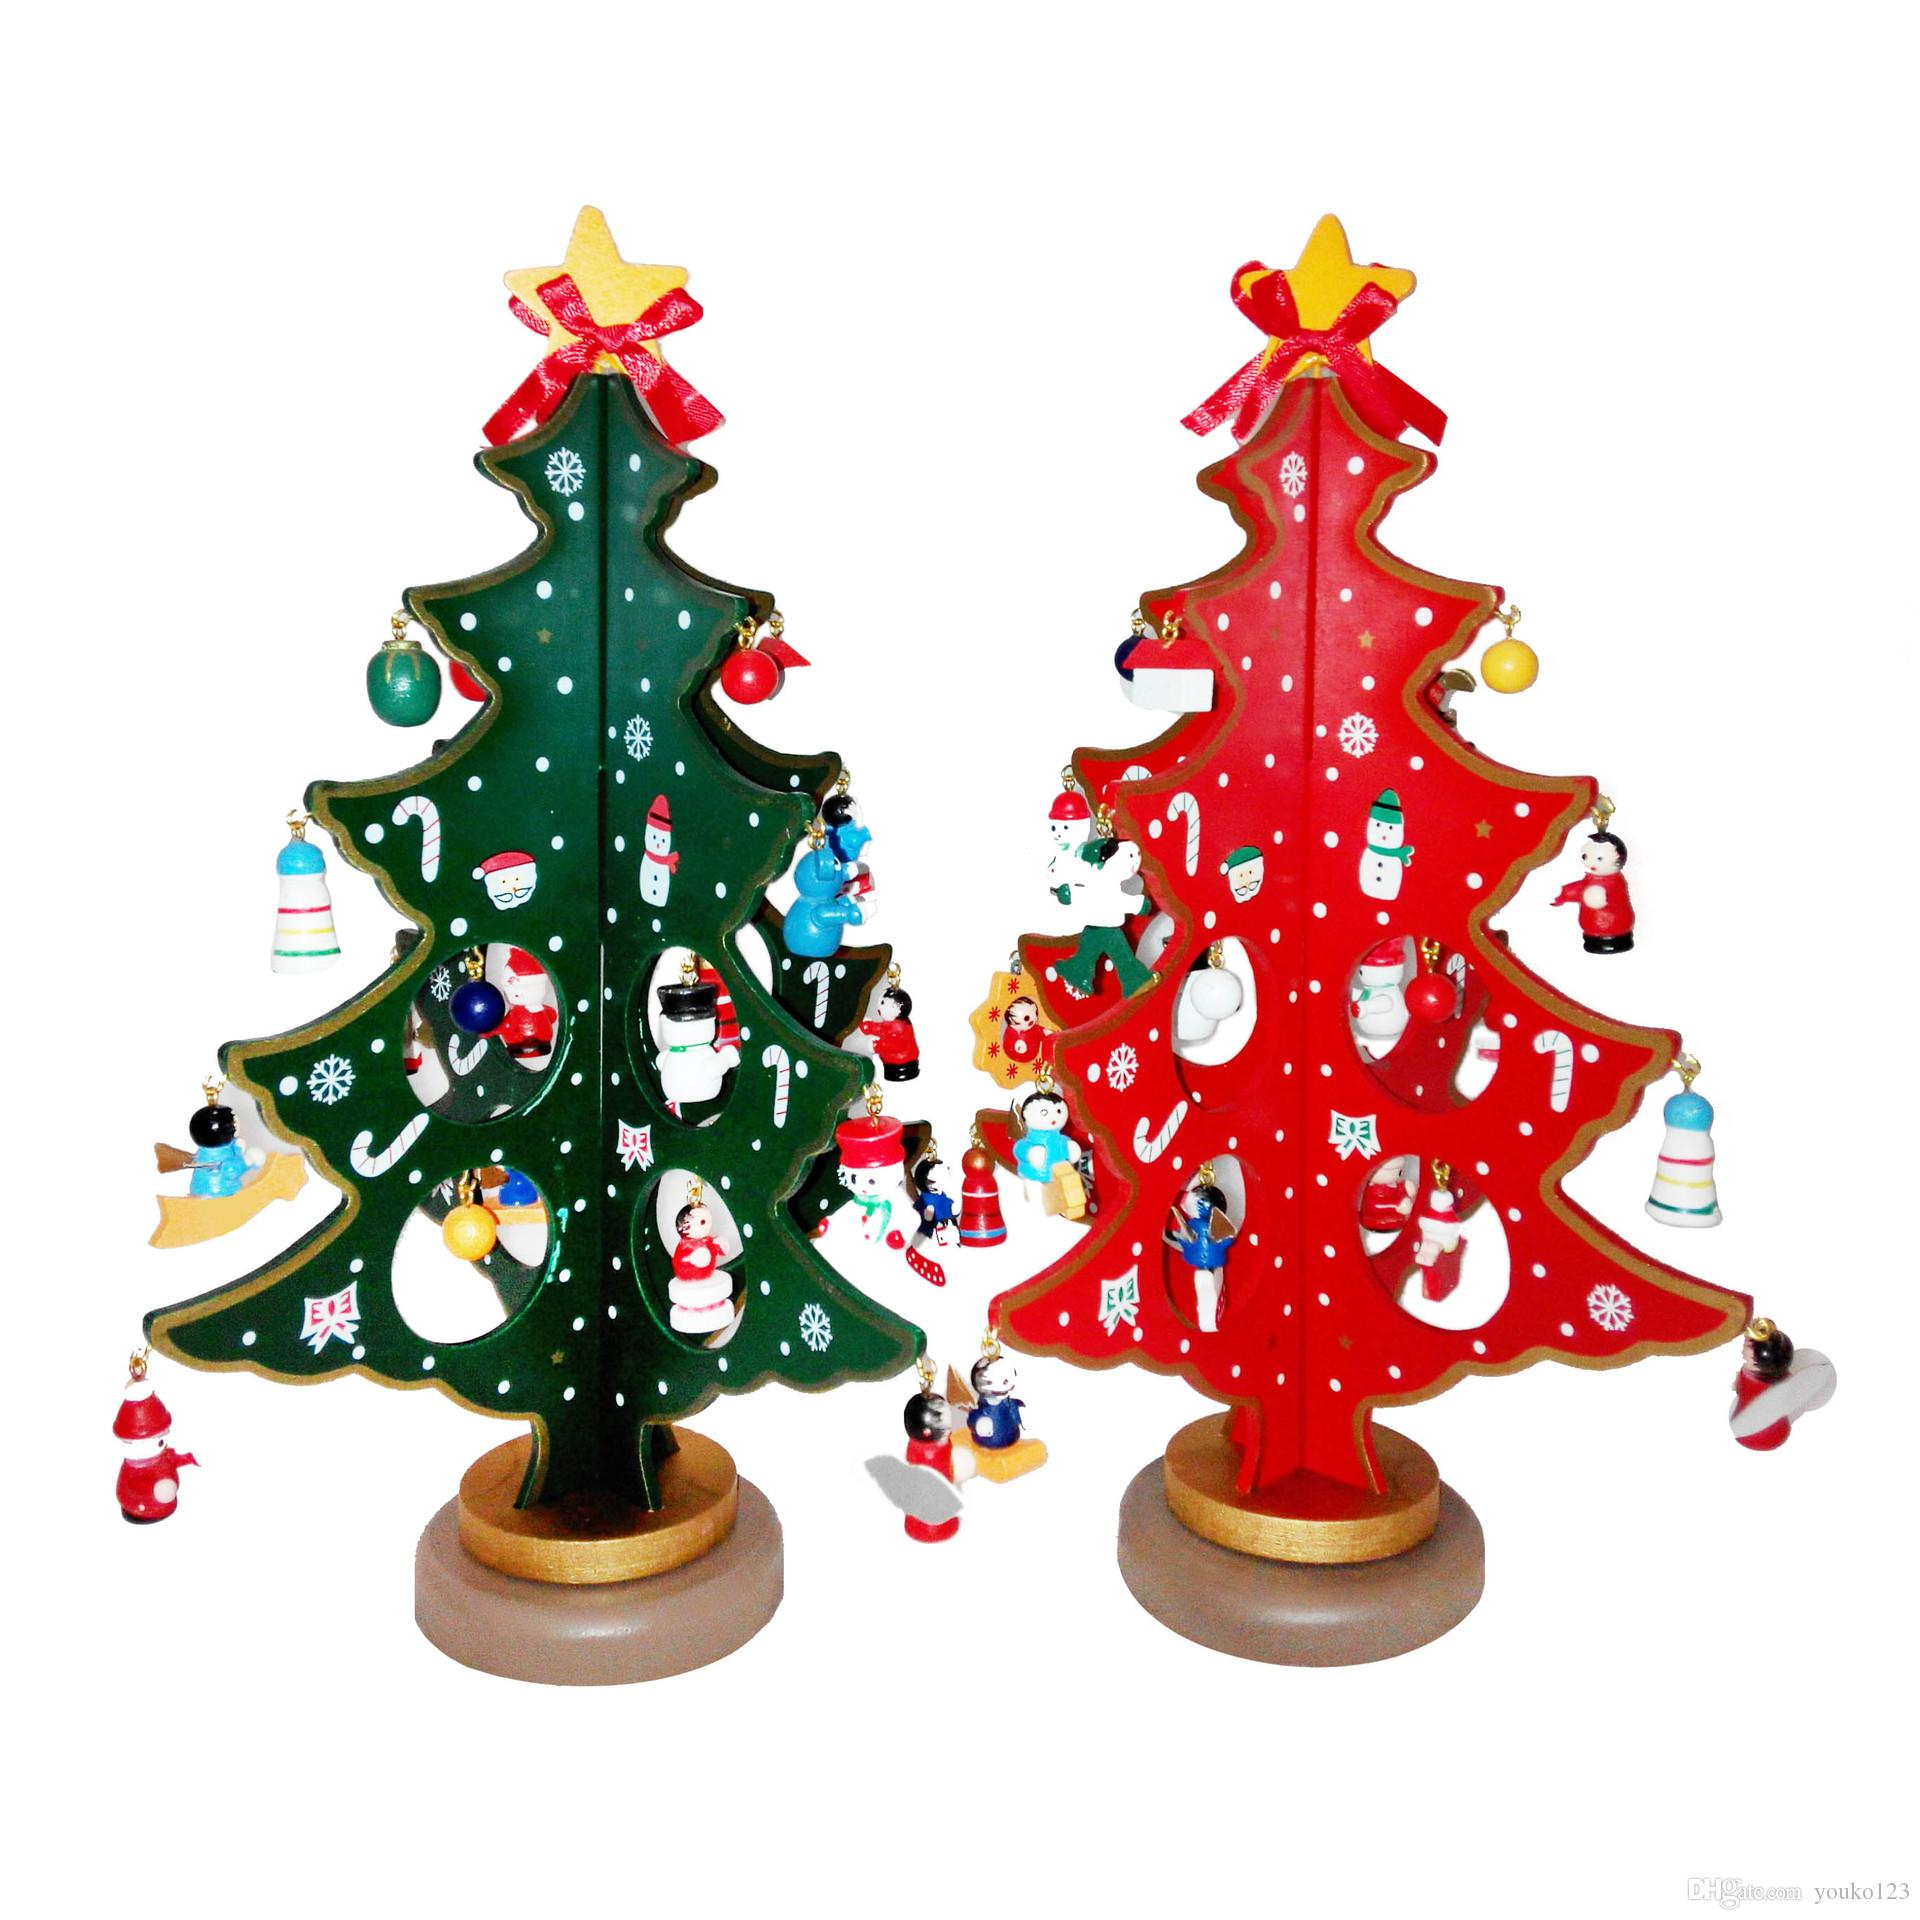 Creative Christmas Ornaments Festive Gifts Handmade Wooden Christmas Tree  Desktop Decoration DIY Manual Assembly Gift Box Christmas Tree Christmas ...